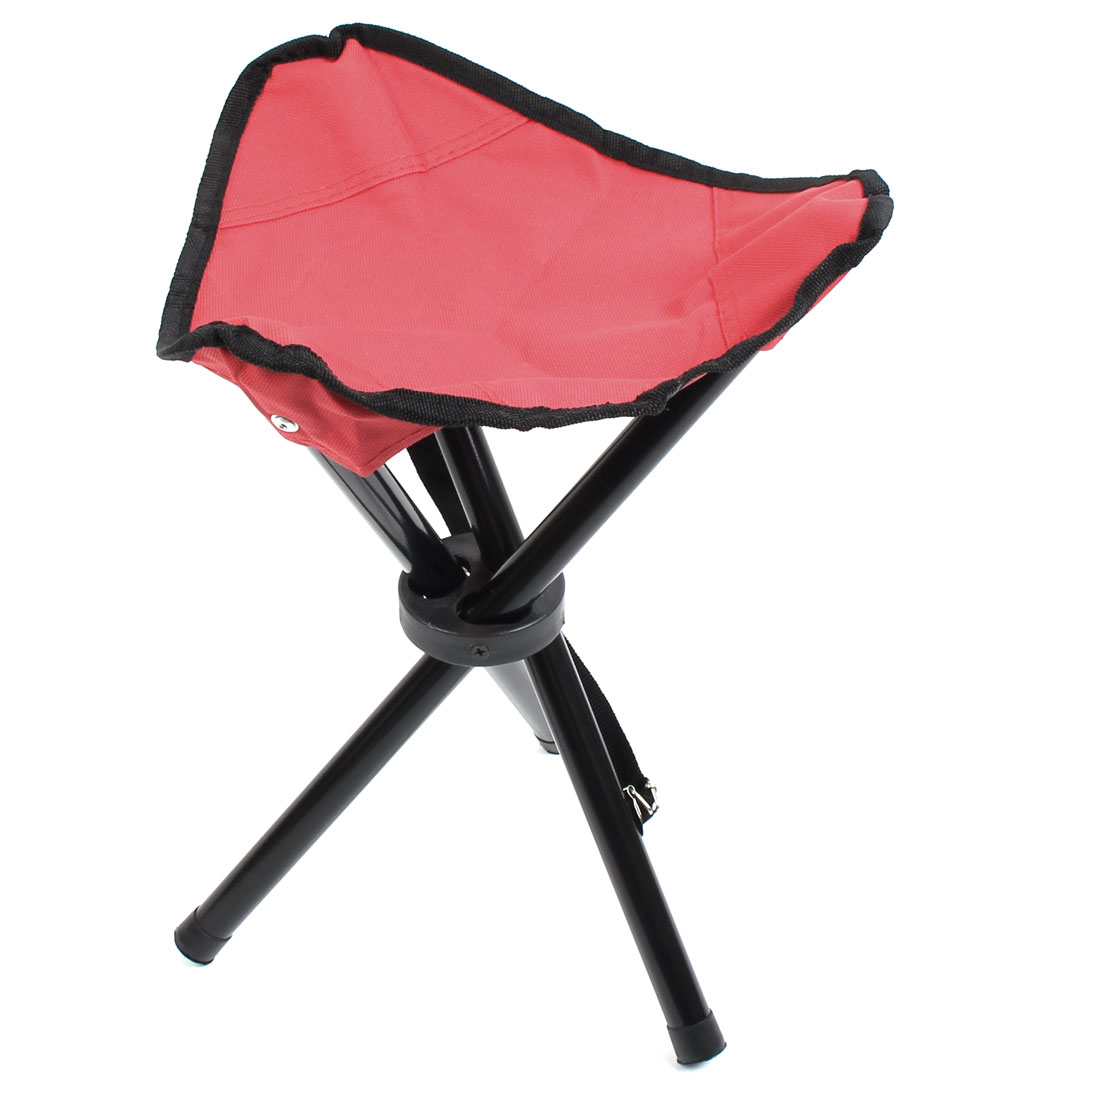 Outdoor Fishing Travel Metal Frame Nylon Seat Portable Folding Tripod Chair Stool Red